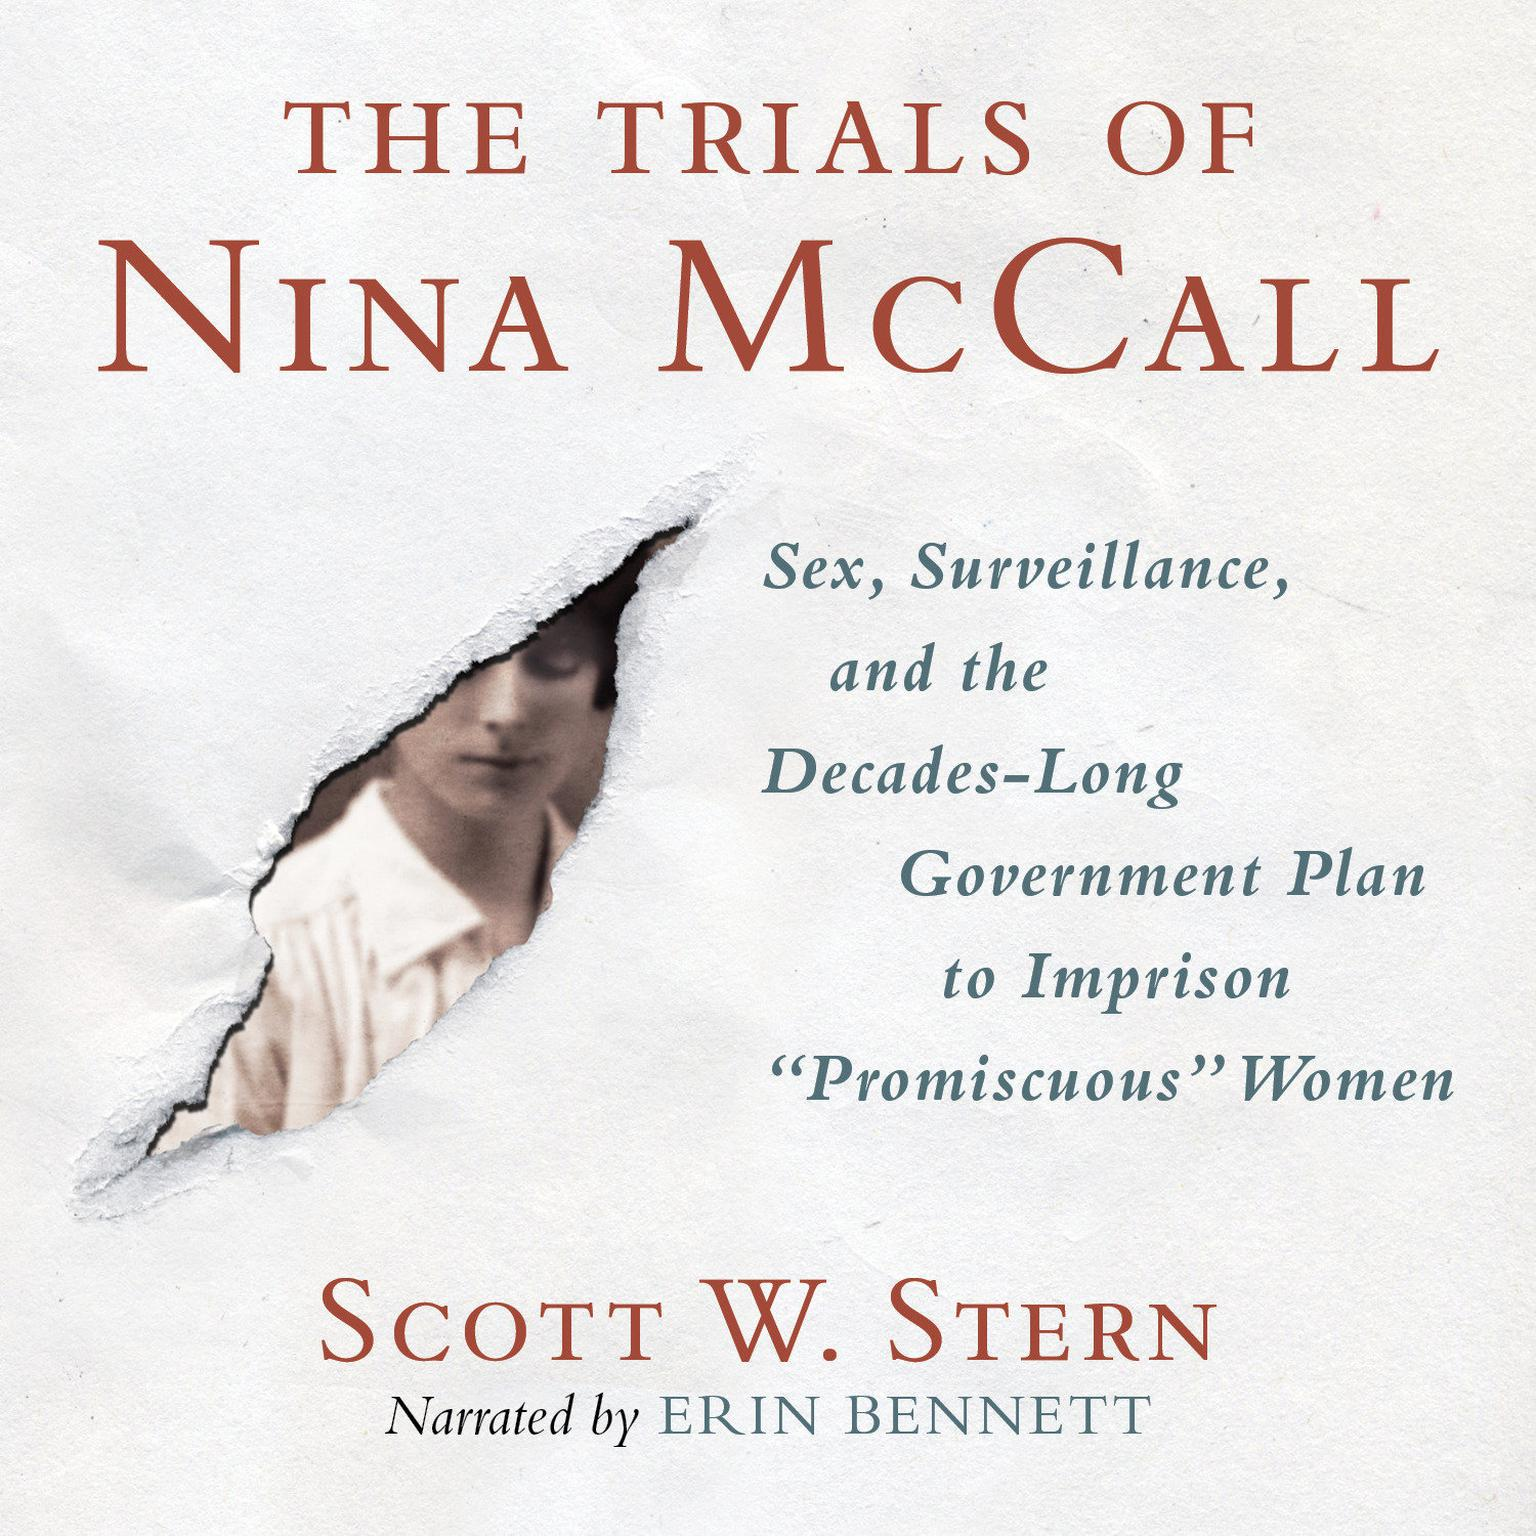 The Trials of Nina McCall: Sex, Surveillance, and the Decades-Long Government Plan to Imprison Promiscuous Women Audiobook, by Scott W. Stern